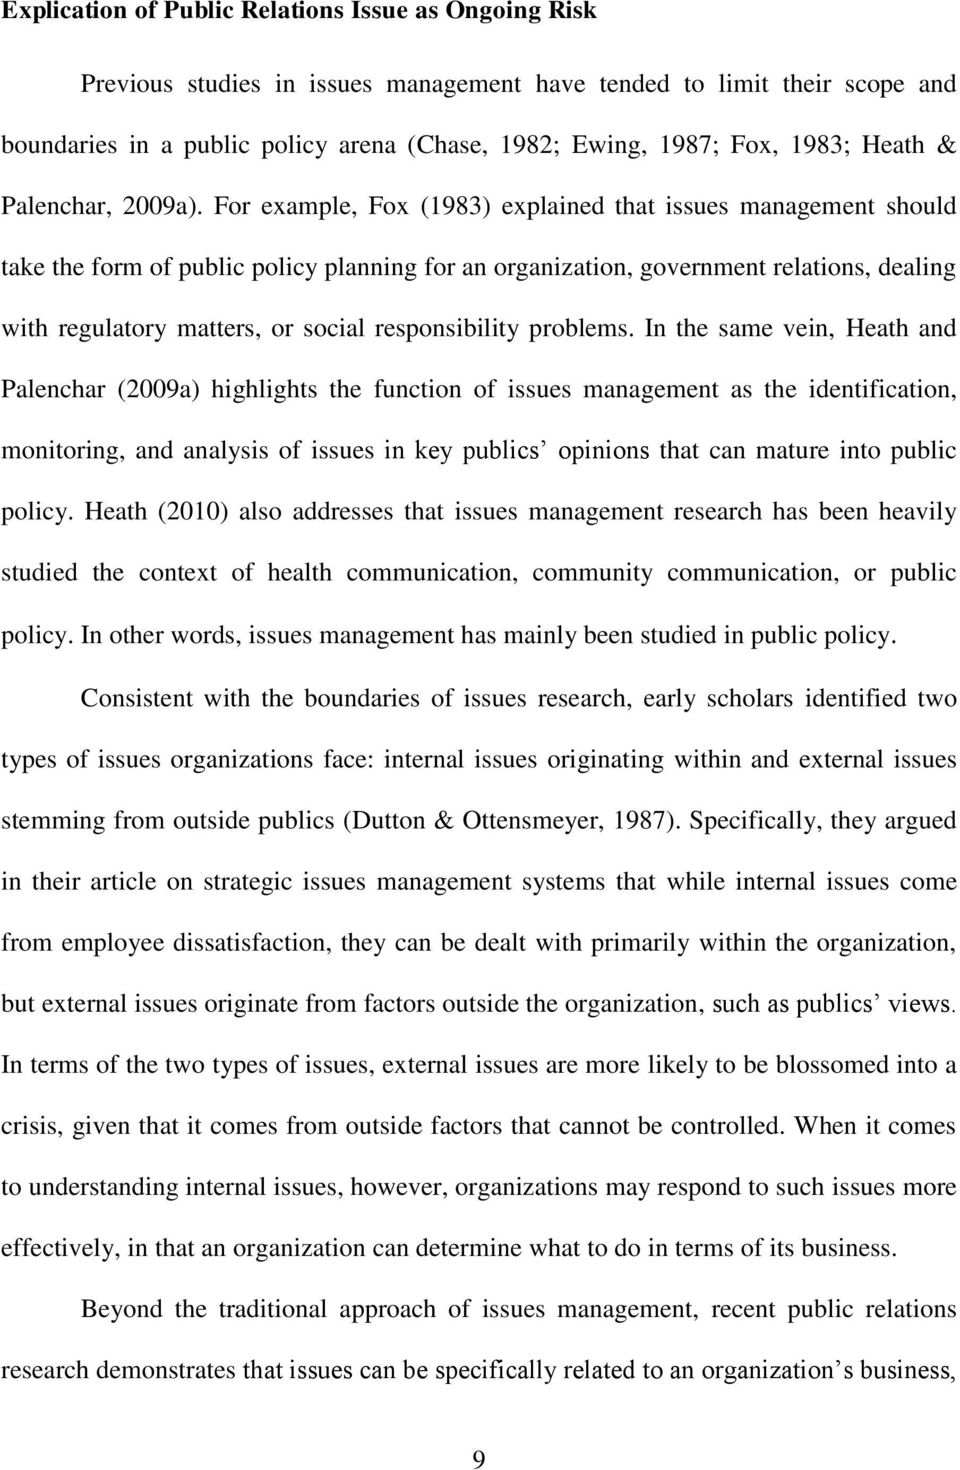 For example, Fox (1983) explained that issues management should take the form of public policy planning for an organization, government relations, dealing with regulatory matters, or social